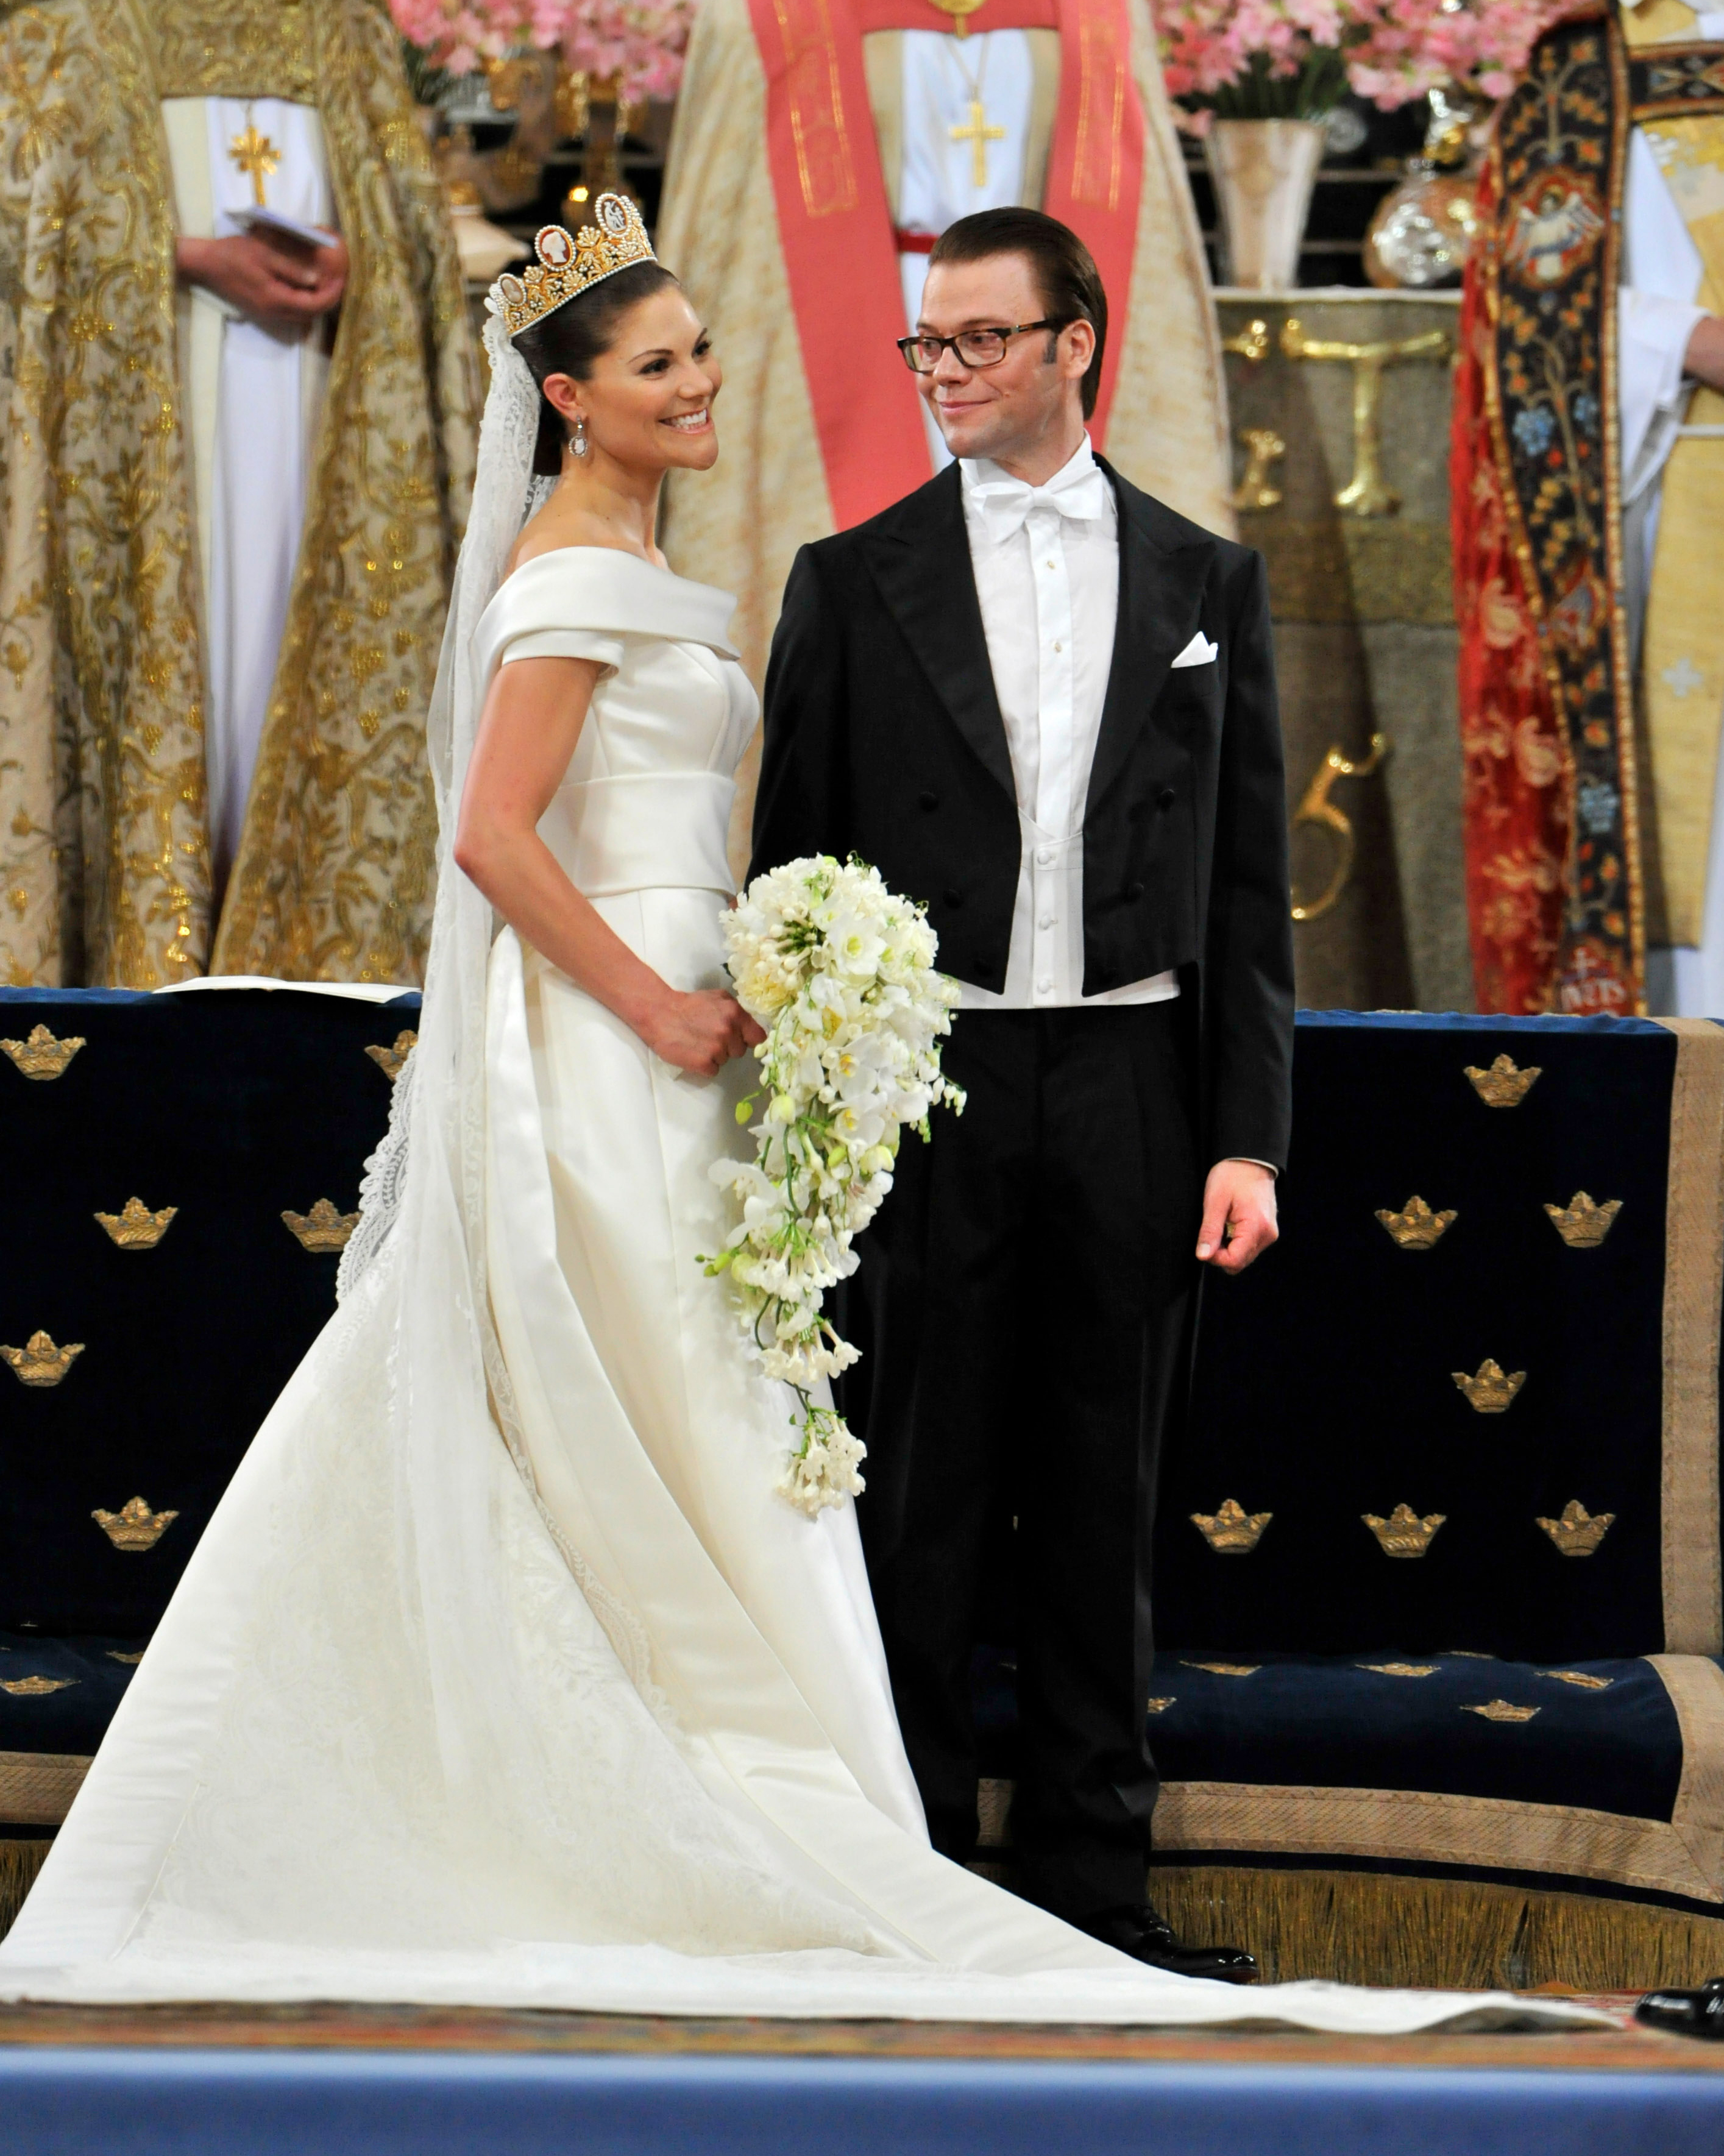 Pictures Of The Royal Wedding.The 17 Best Royal Wedding Dresses Of All Time Martha Stewart Weddings